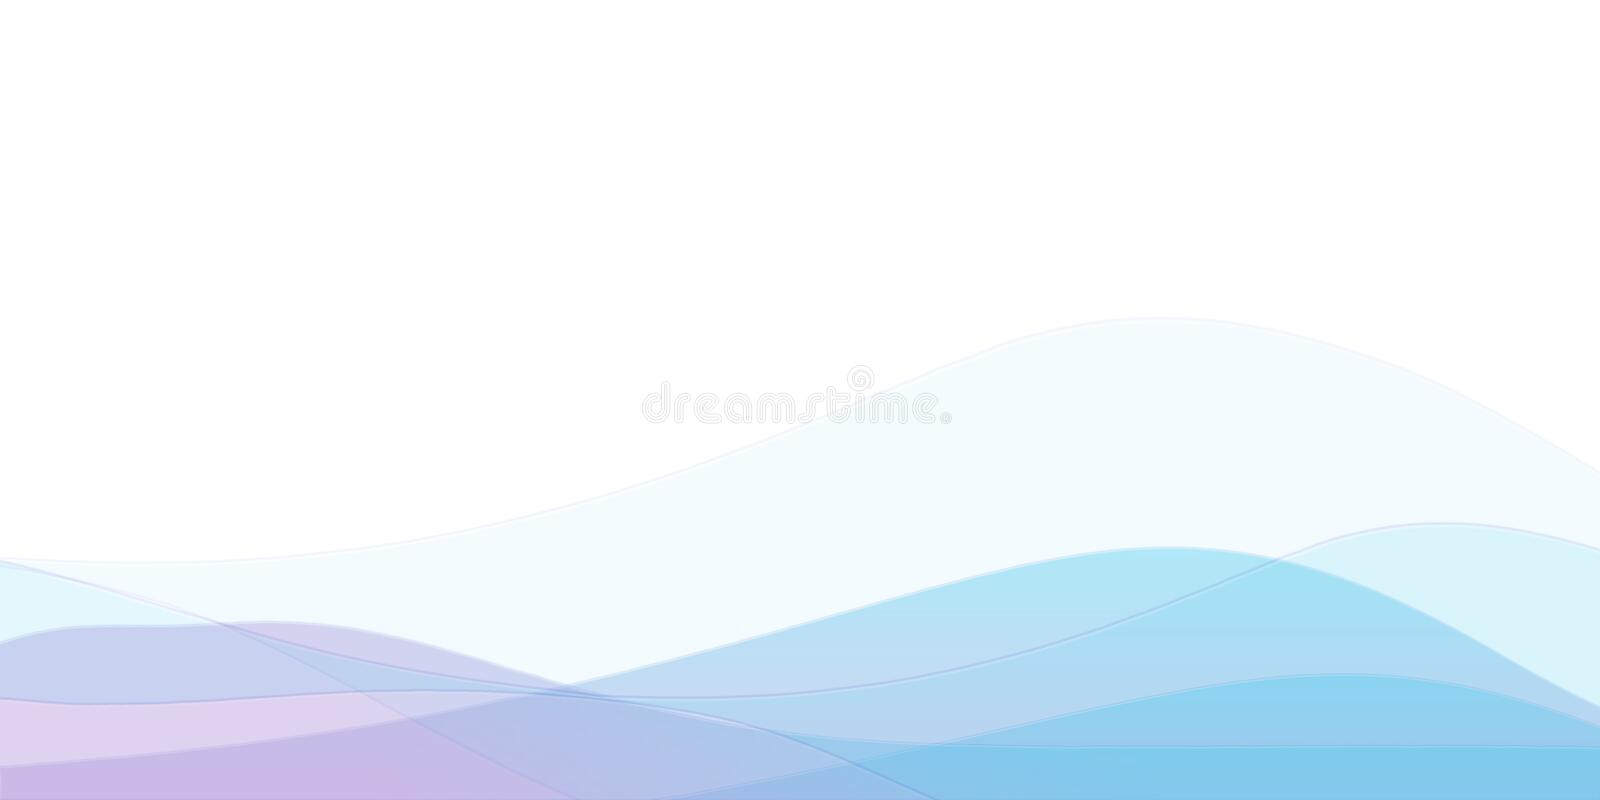 Soft minimal background. Waves in different colors on white background